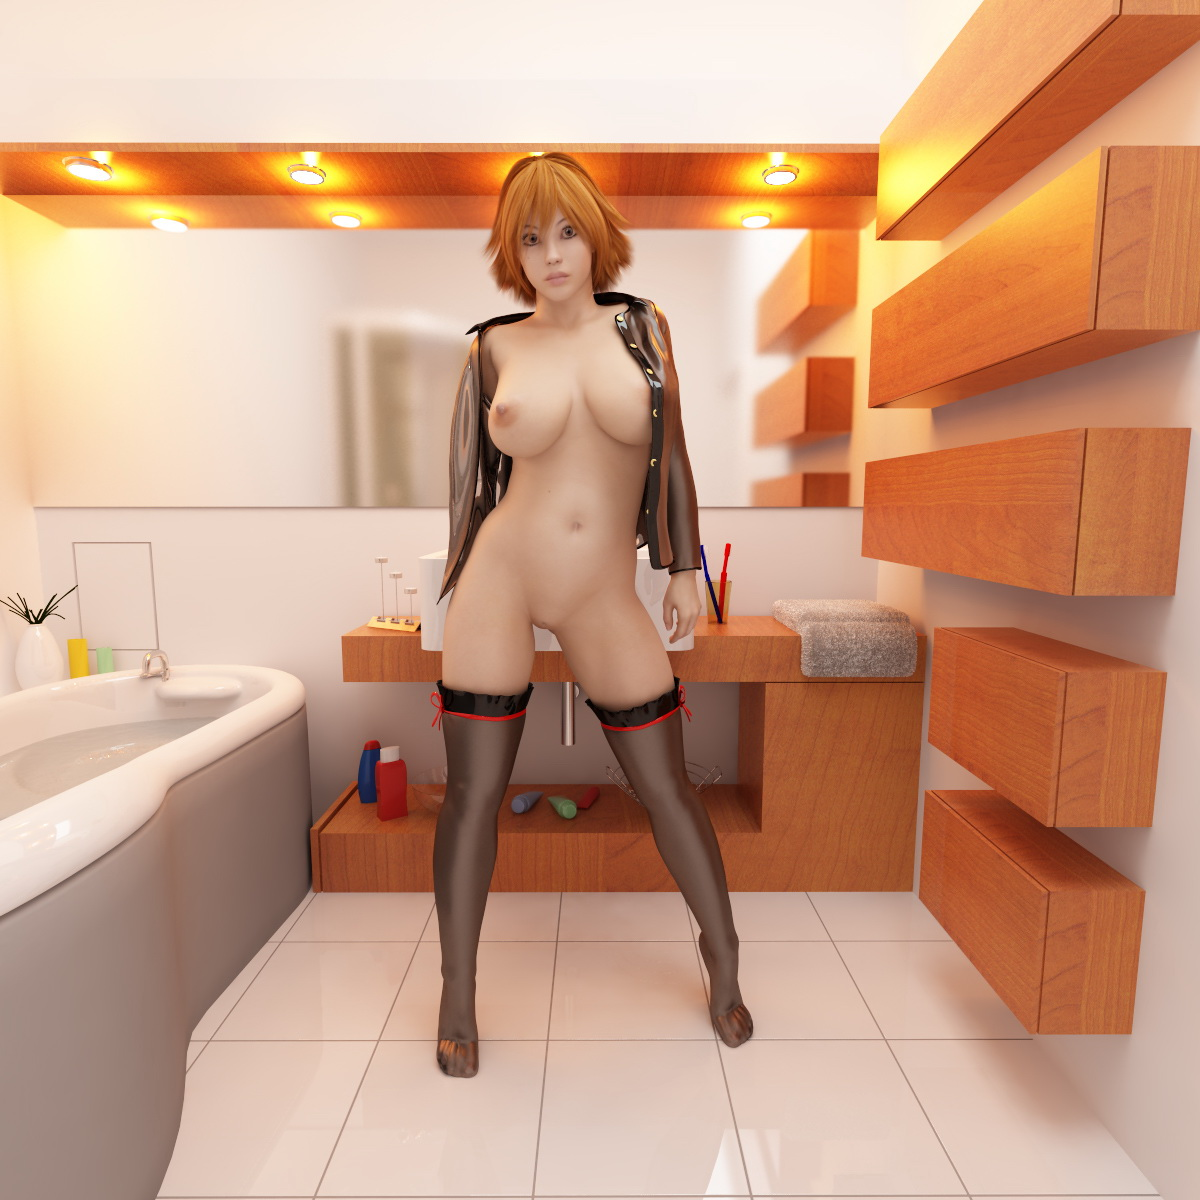 3d sexy girl models naked videos